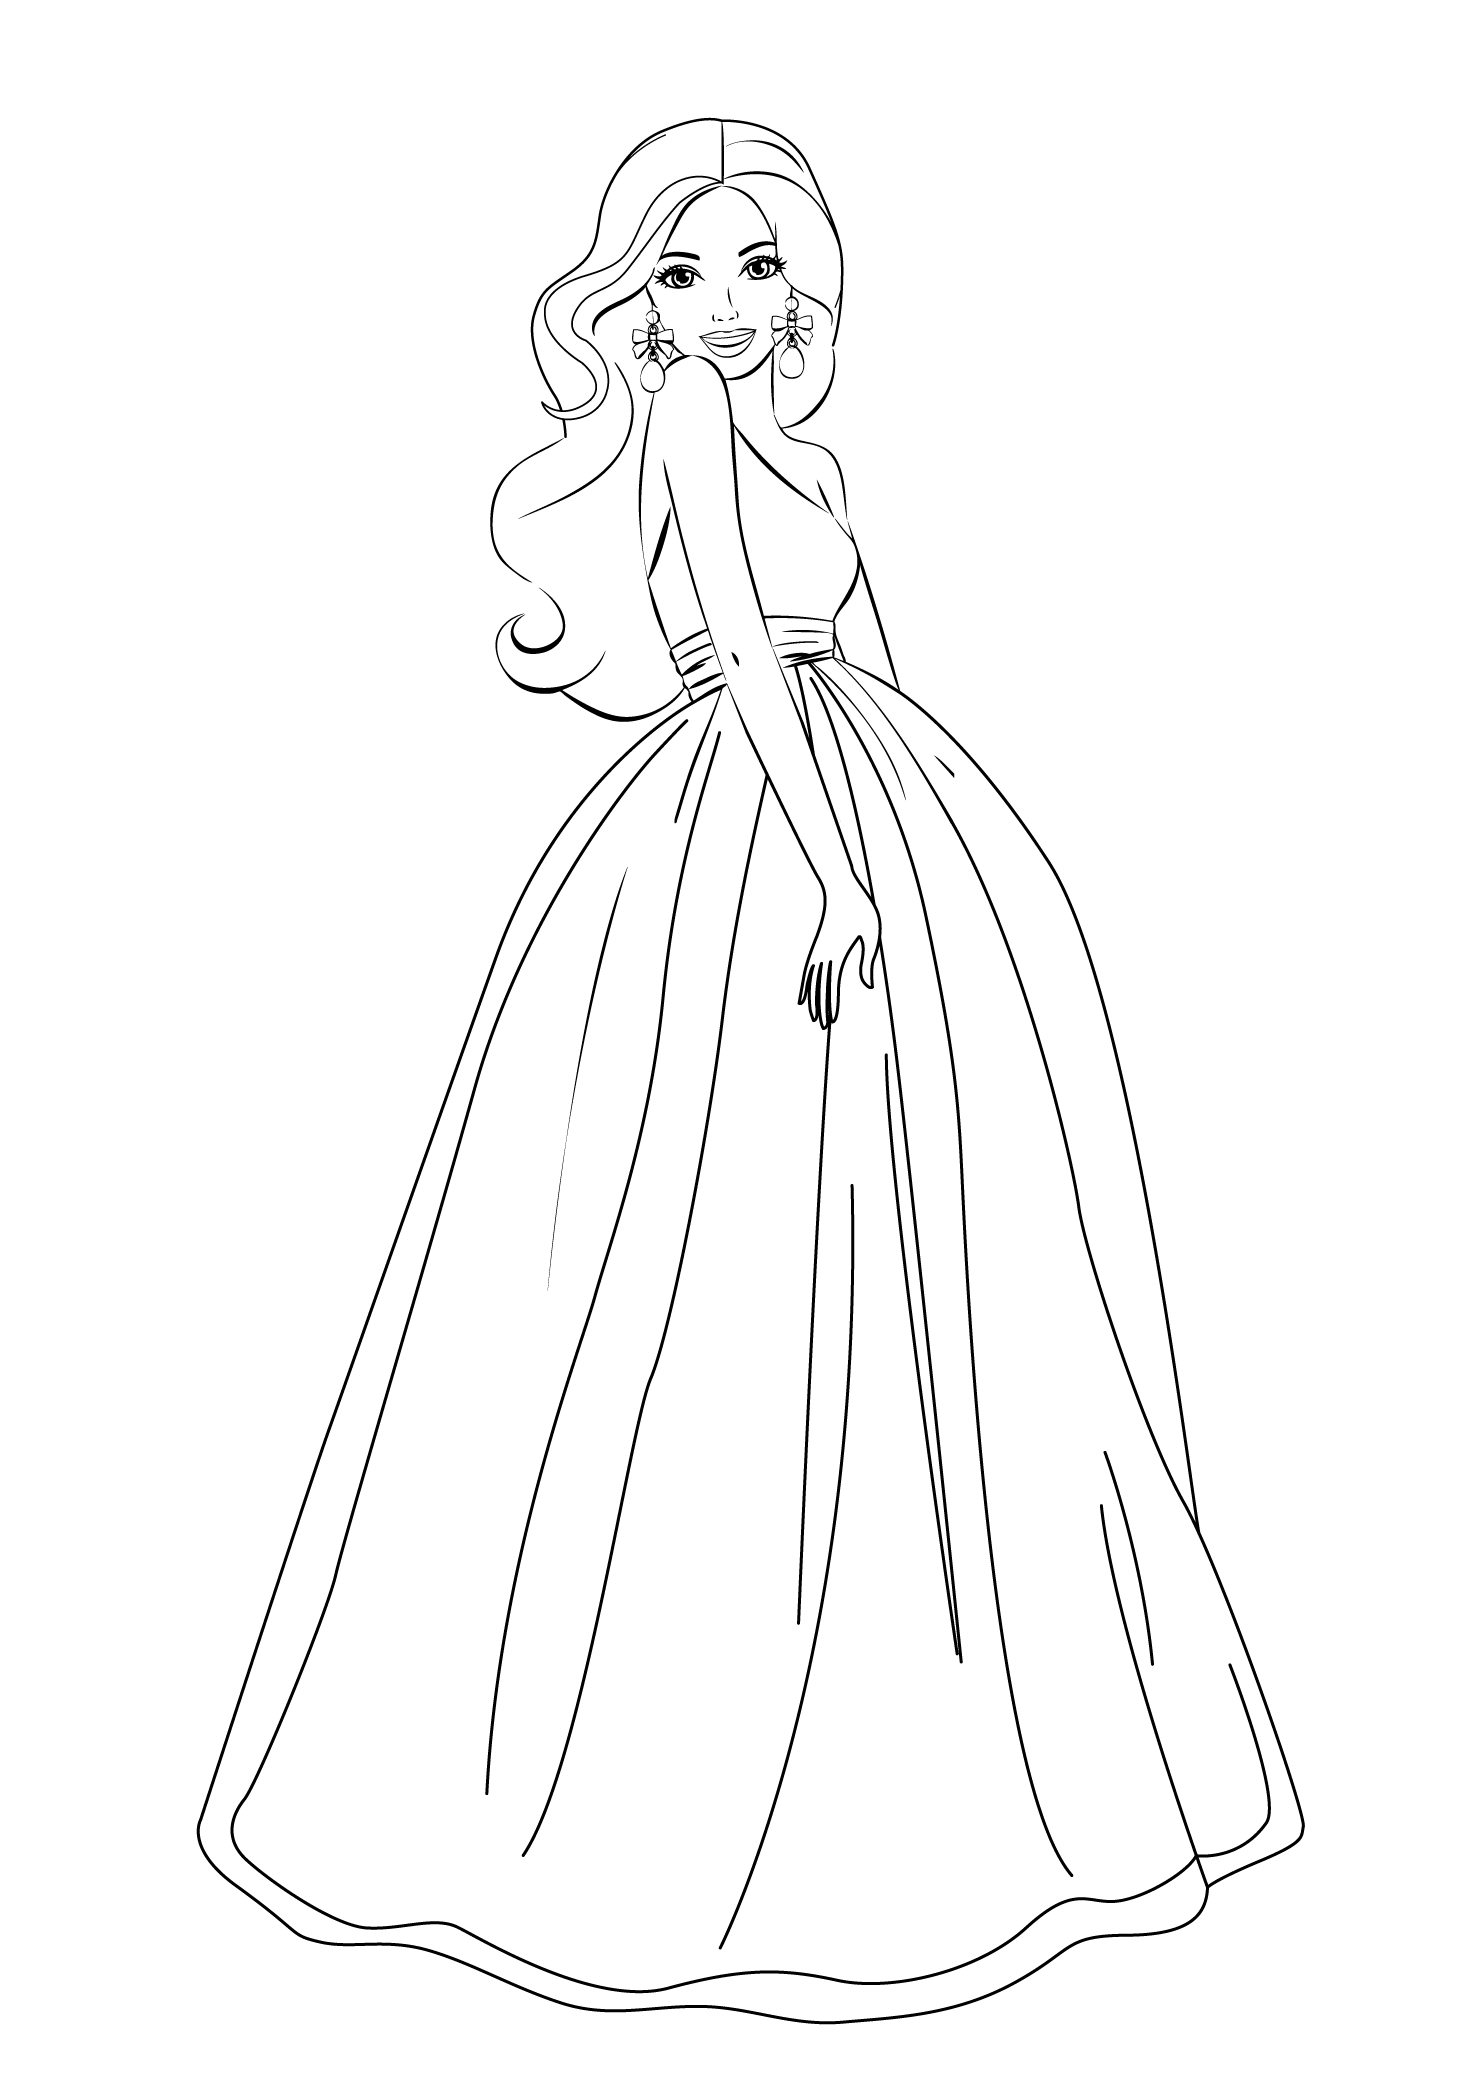 Uncategorized Coloring Page Barbie barbie coloring pages for girls free printable printable